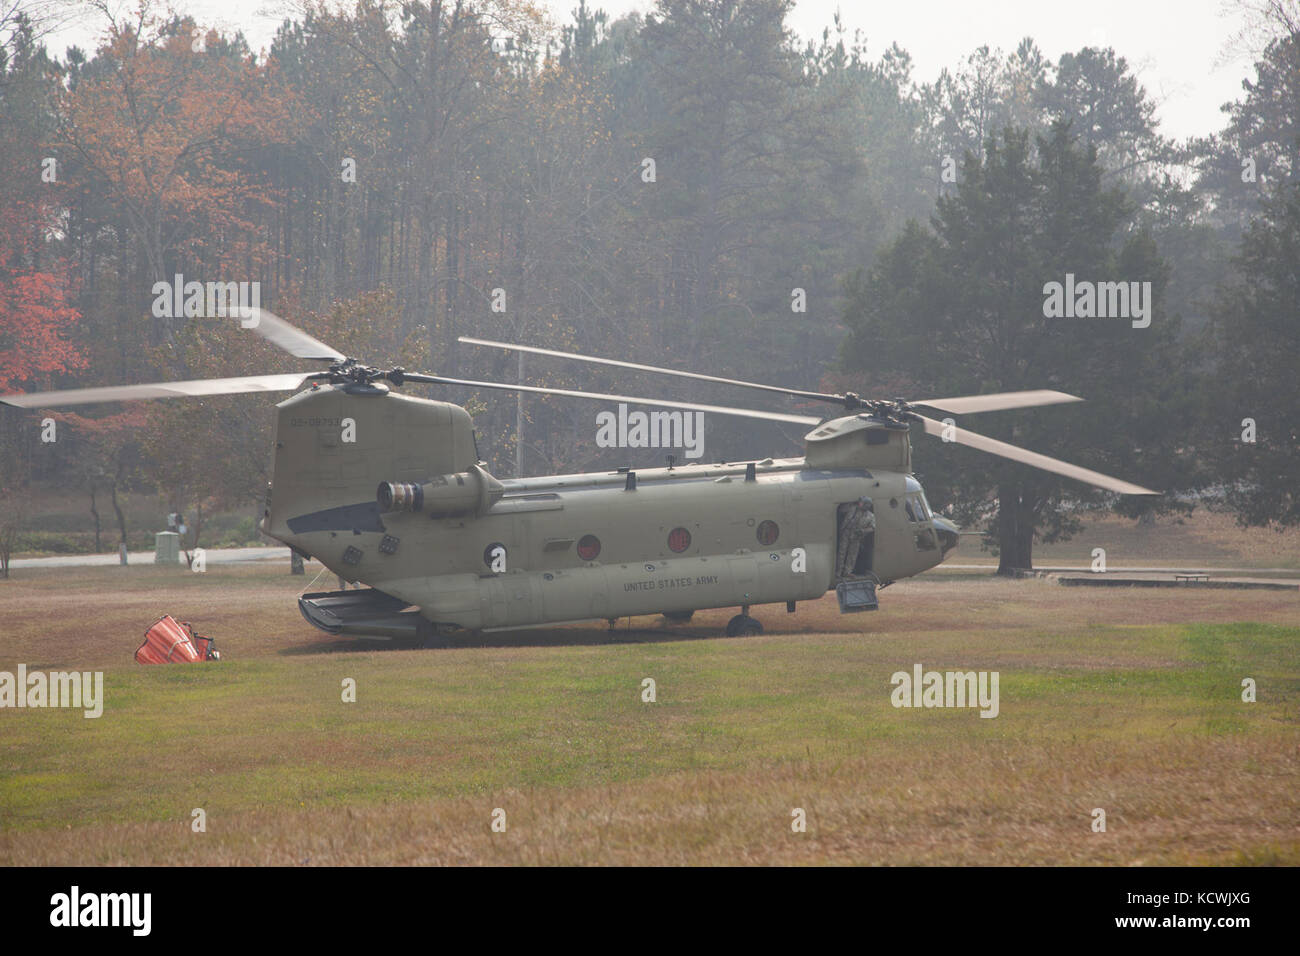 A South Carolina Army National Guard CH-47 Chinook from Det. 1, Bravo Company, 2-238th General Support Aviation Stock Photo